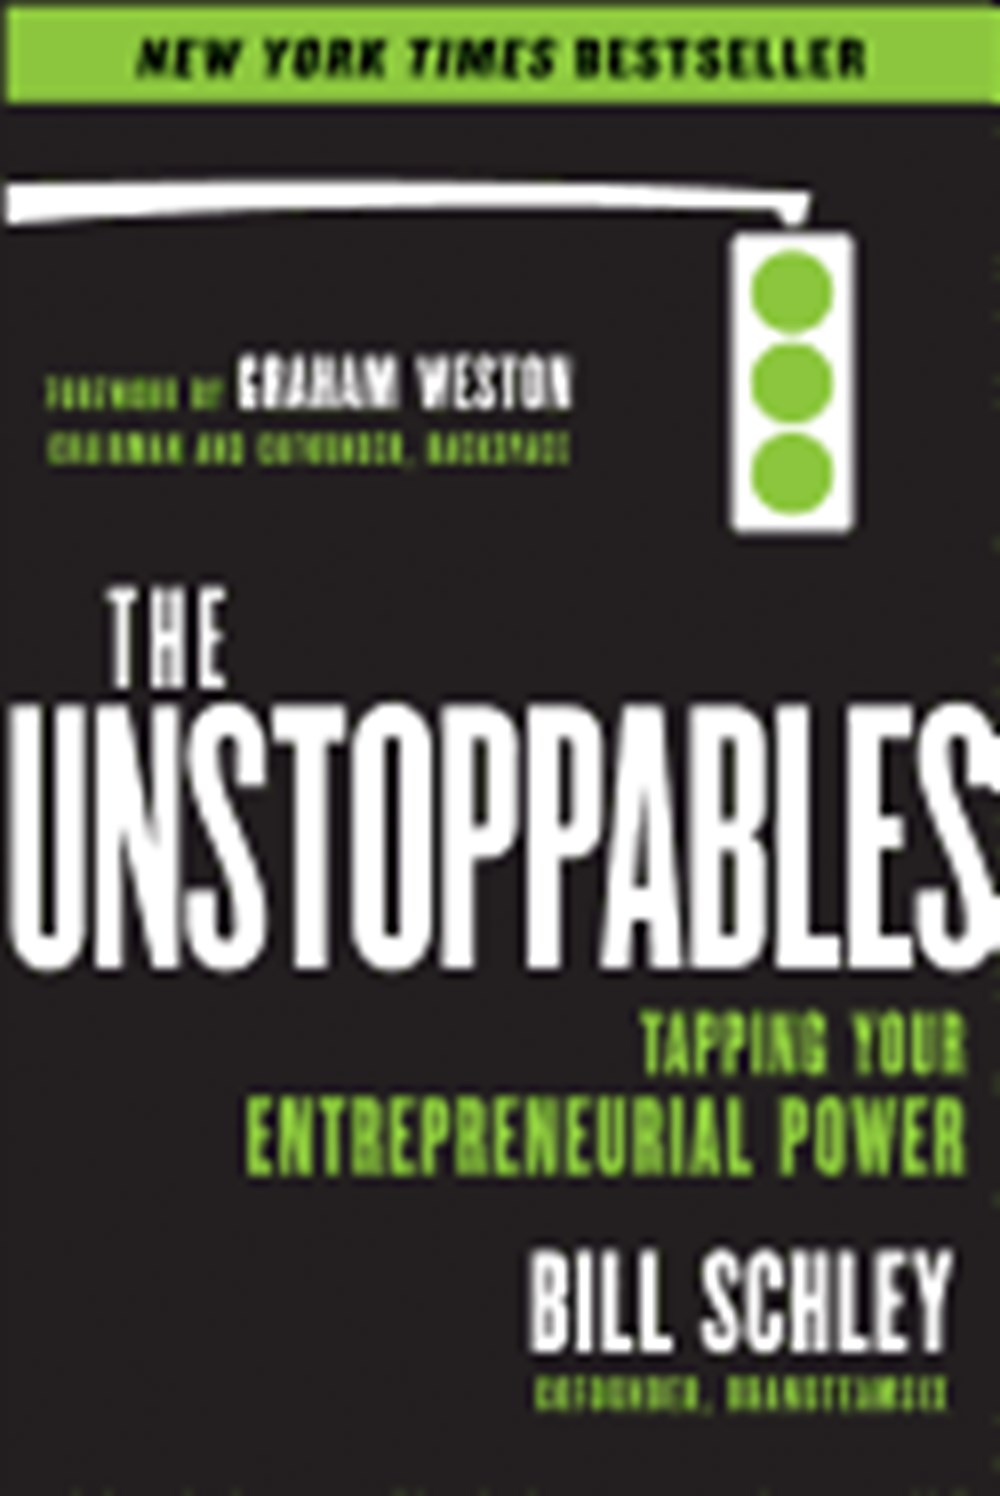 Unstoppables Tapping Your Entrepreneurial Power